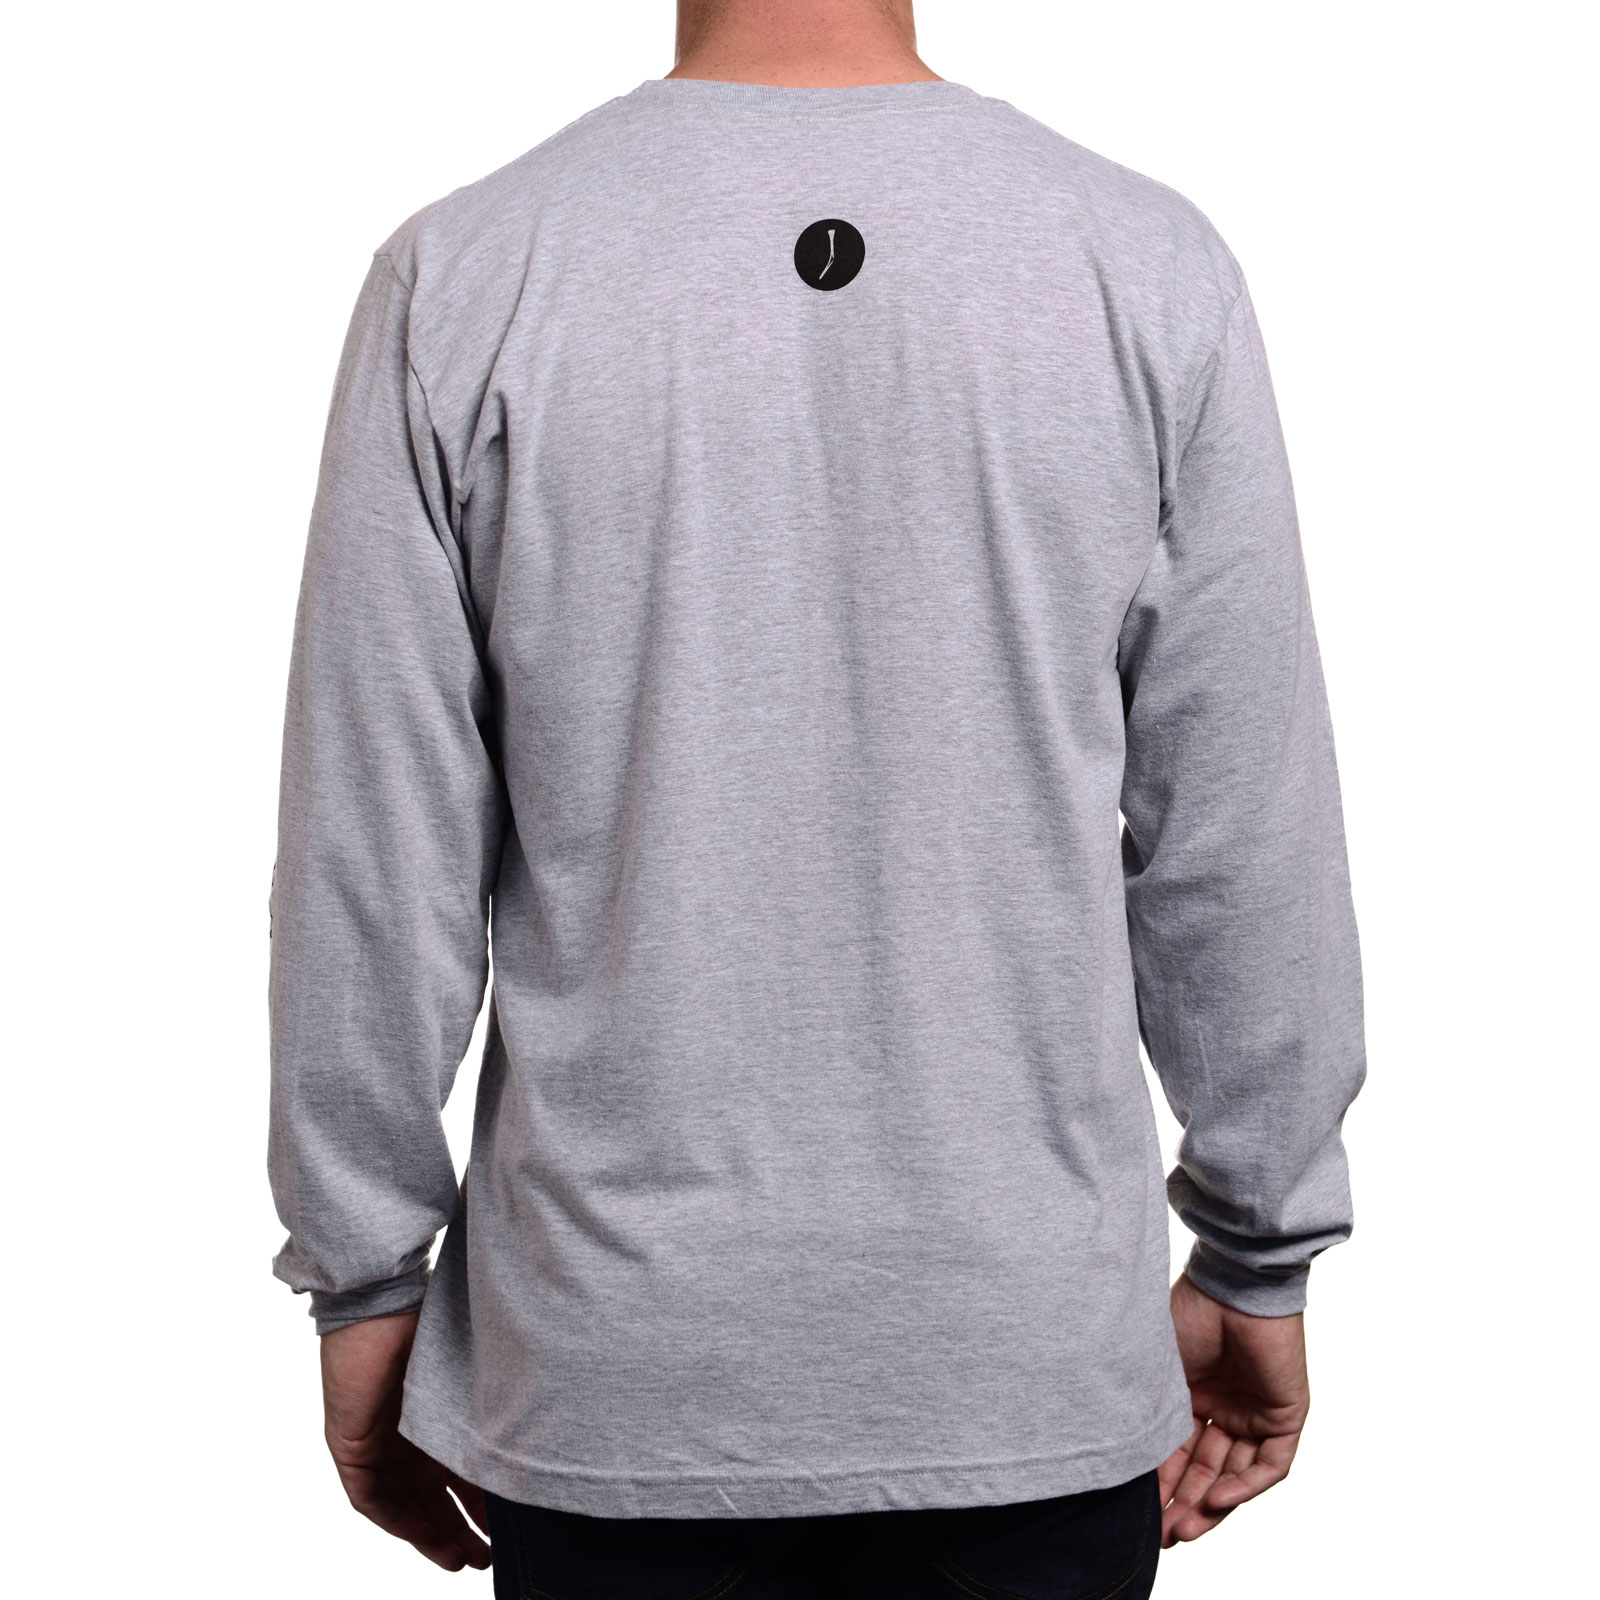 TGJ Long Sleeve Shirt - Gray